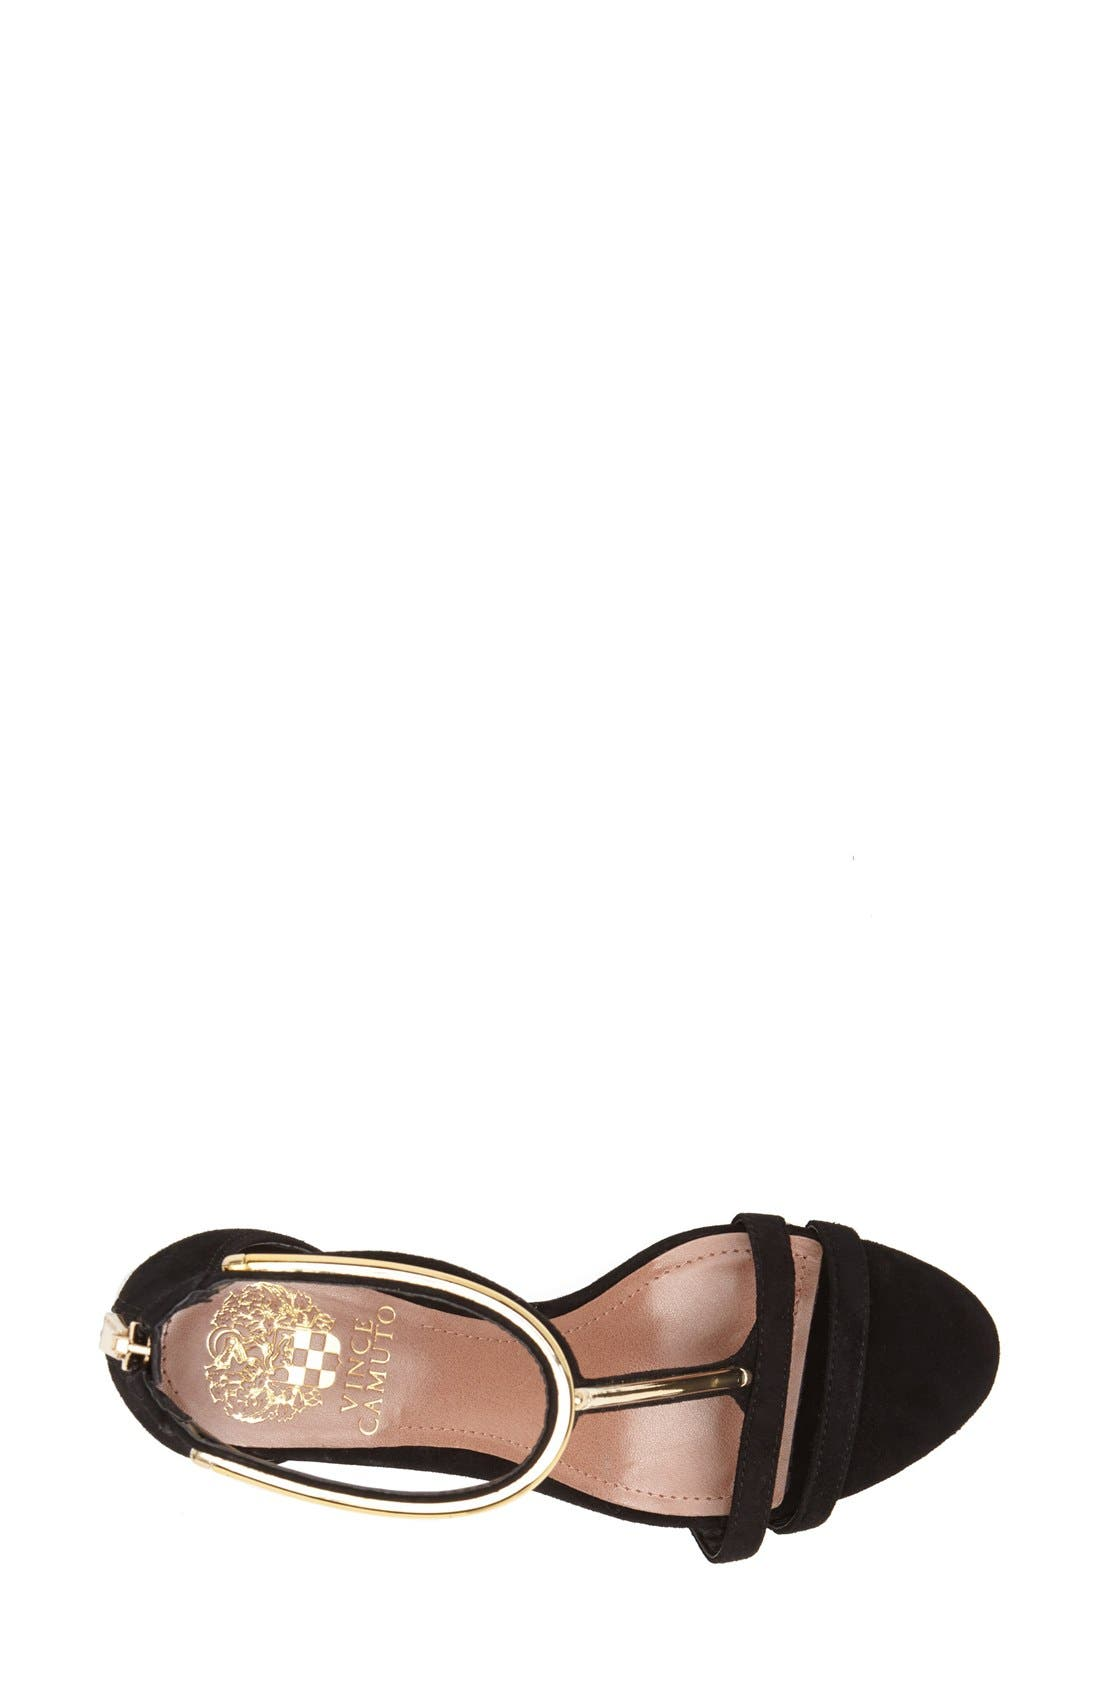 Alternate Image 3  - Vince Camuto 'Mitzy' Suede T-Strap Sandal (Women)